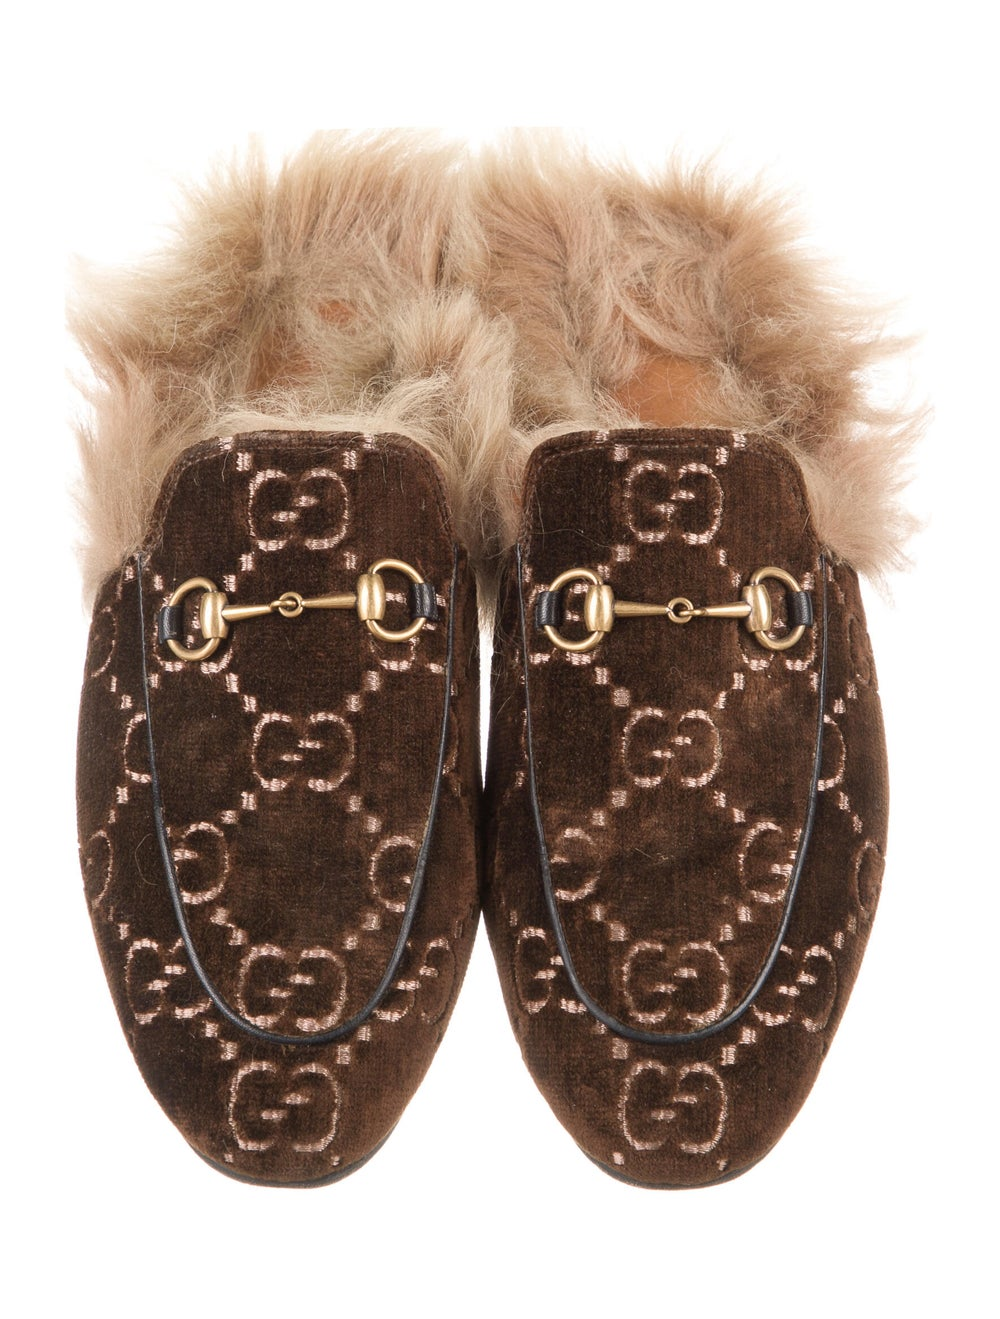 Gucci Horsebit Accent Patterned Mules Brown - image 3